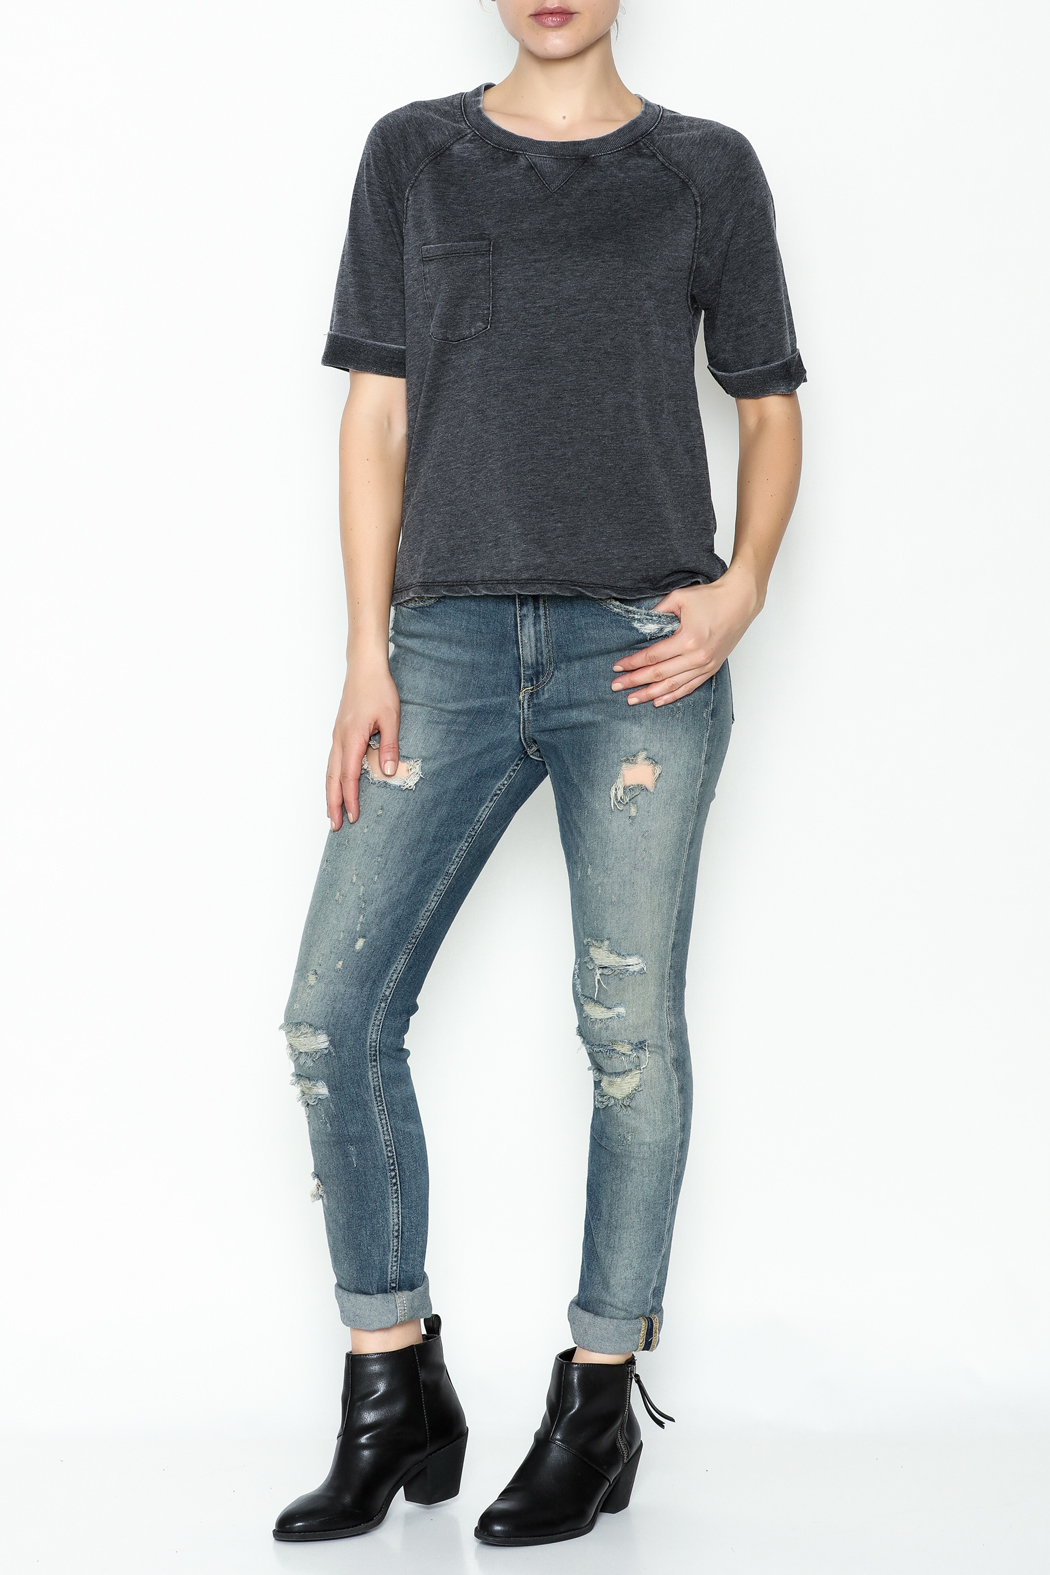 z supply Raglan Soft Top - Side Cropped Image